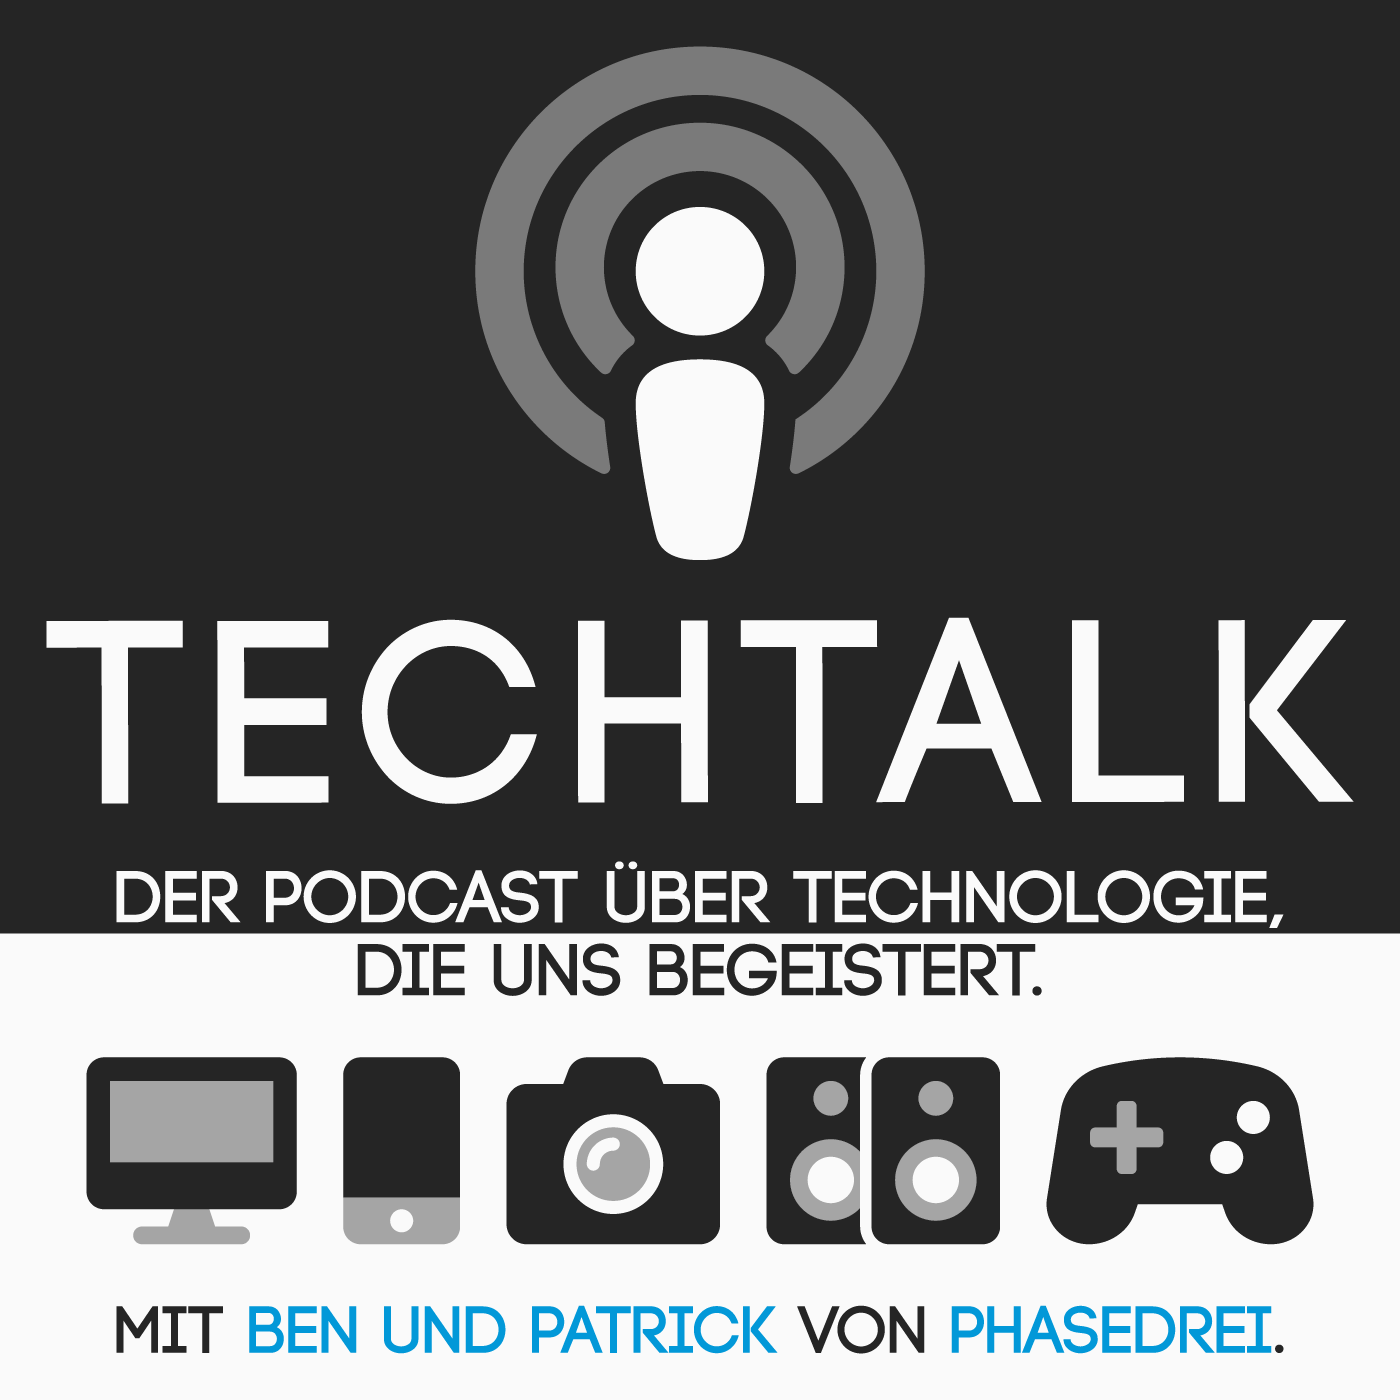 TECHTALK Audio-Podcast